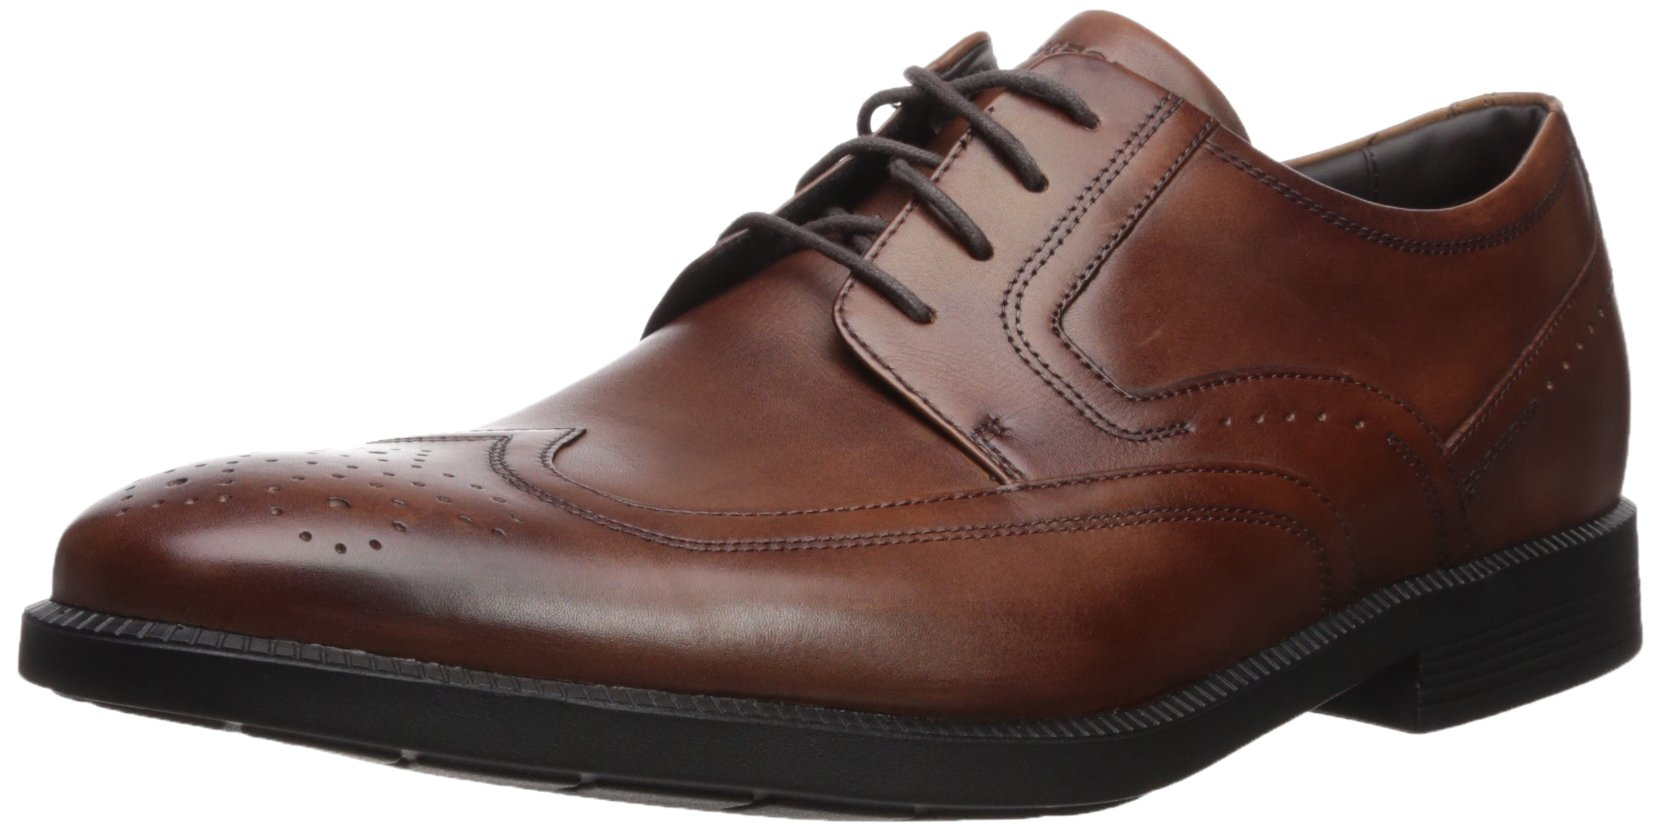 Rockport Men's Dressports Business Wing Tip Shoe, New Brown, 9.5 M US